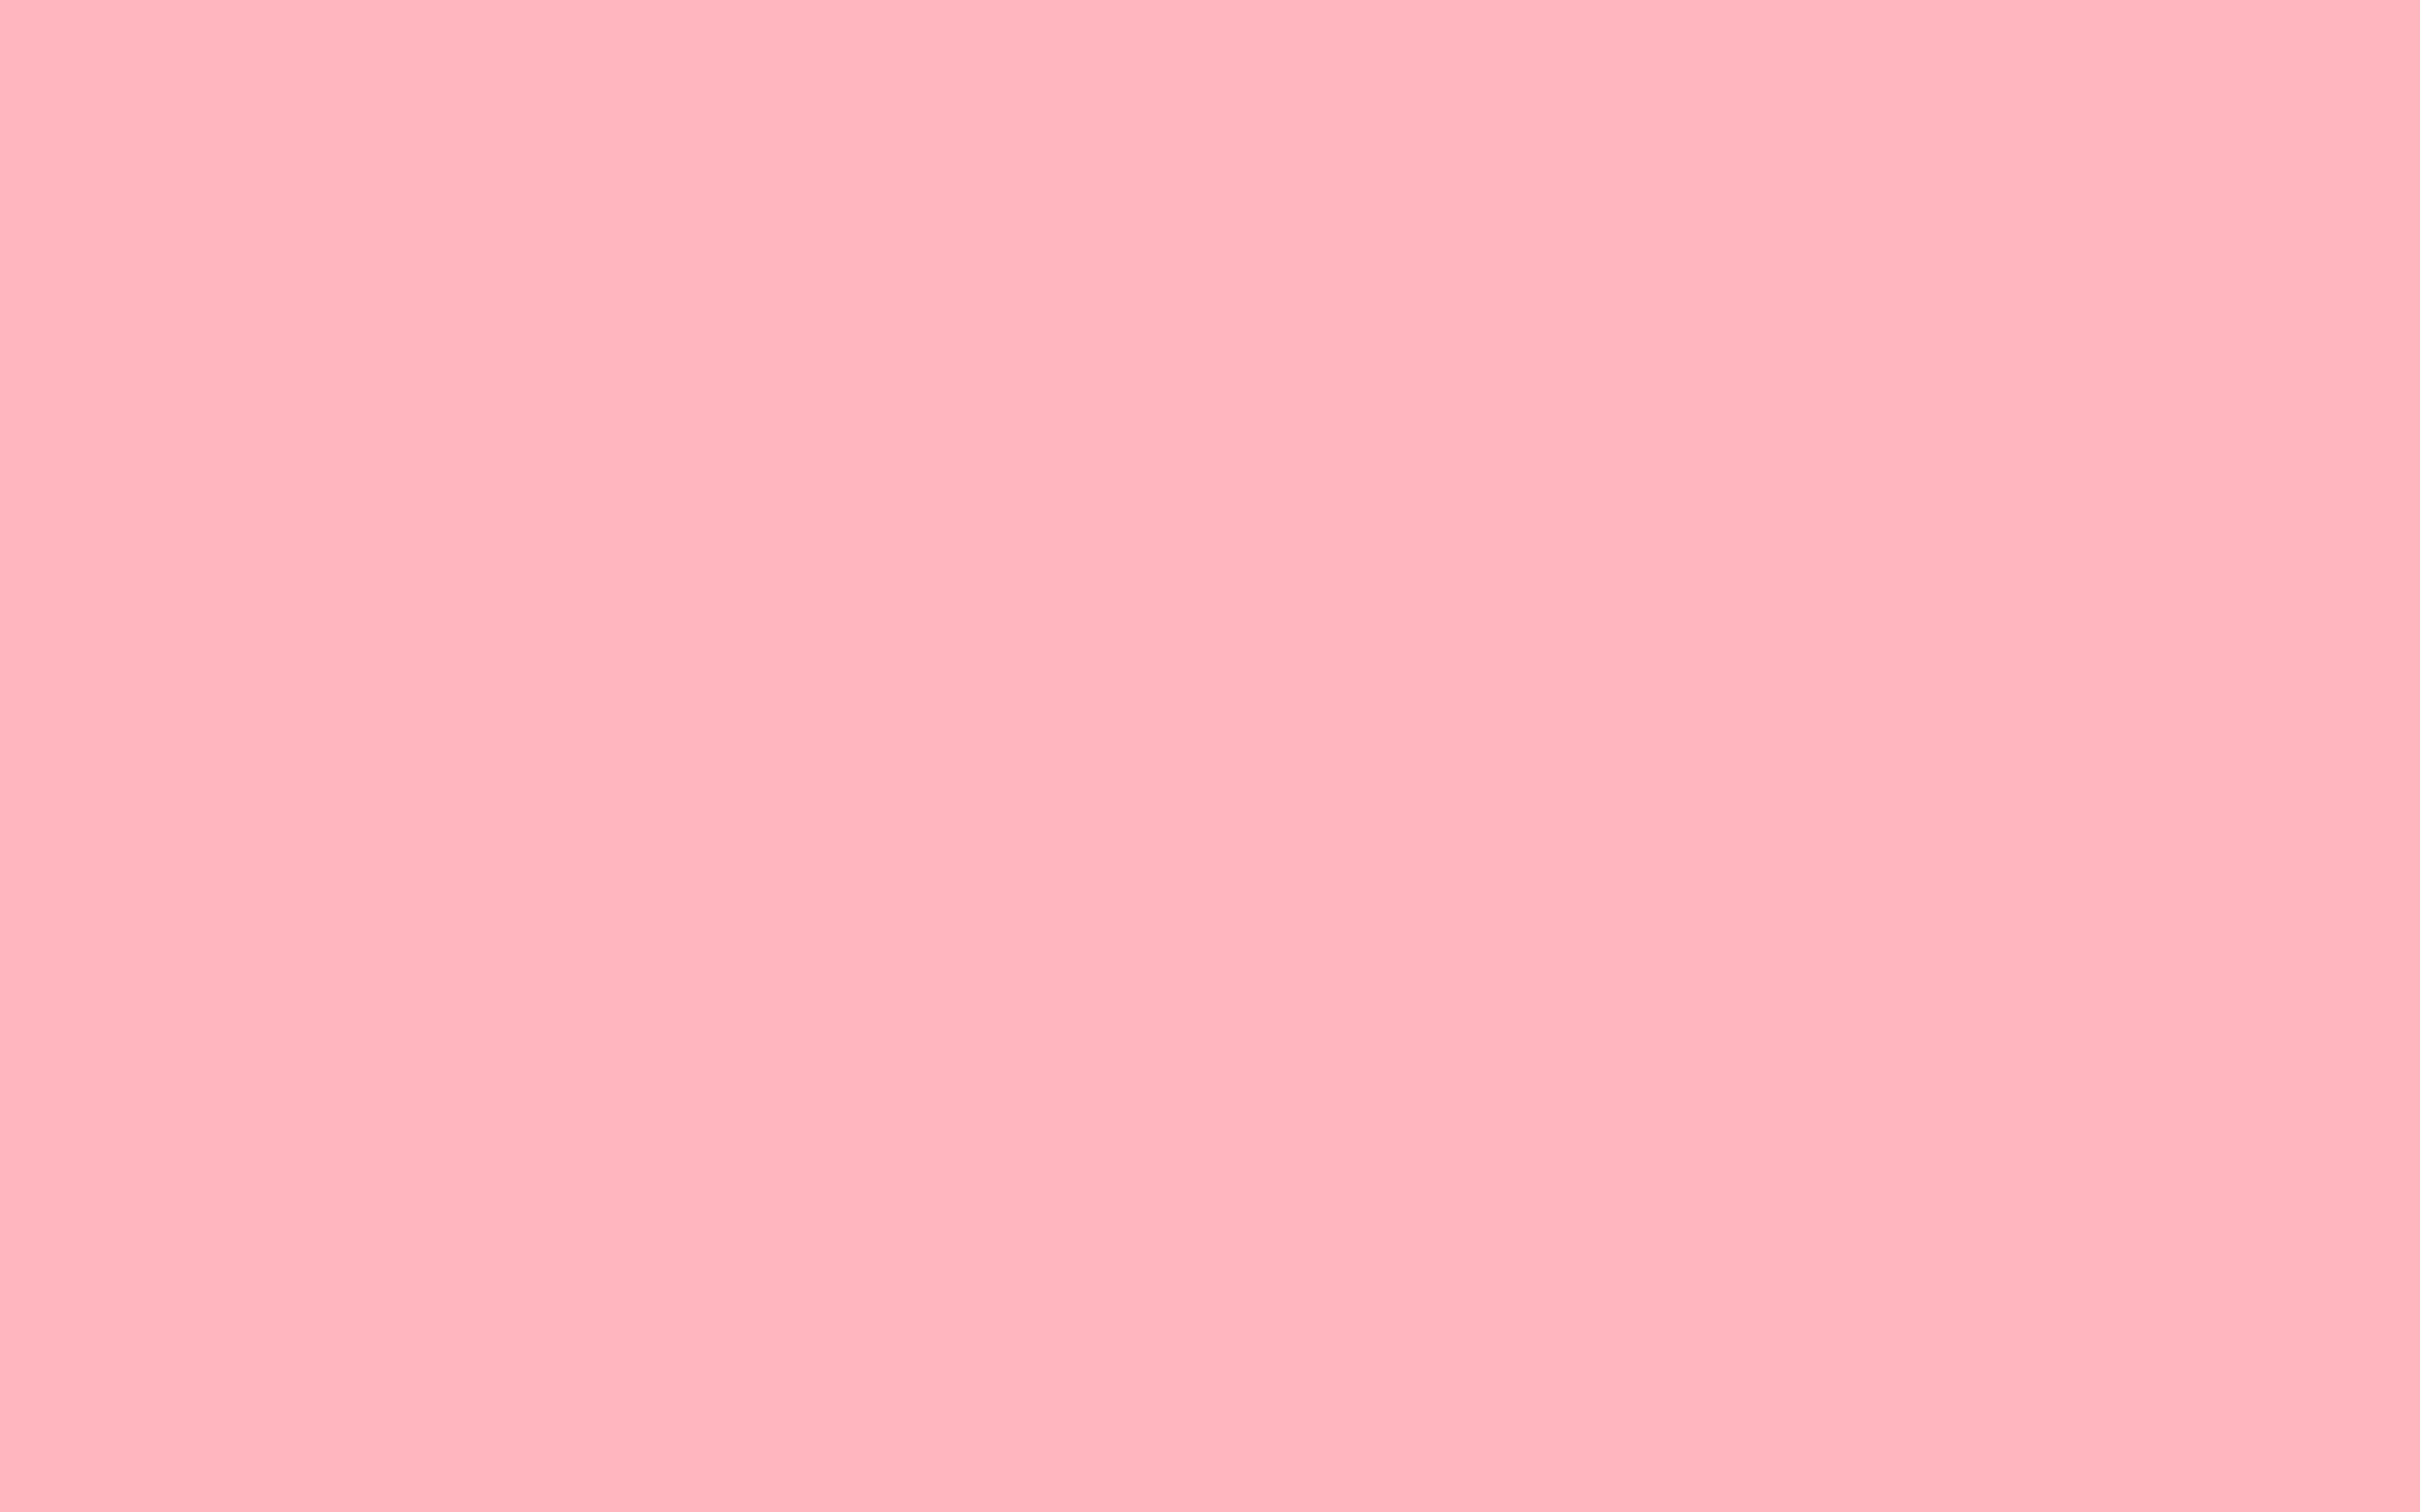 pink color background wallpapersafari